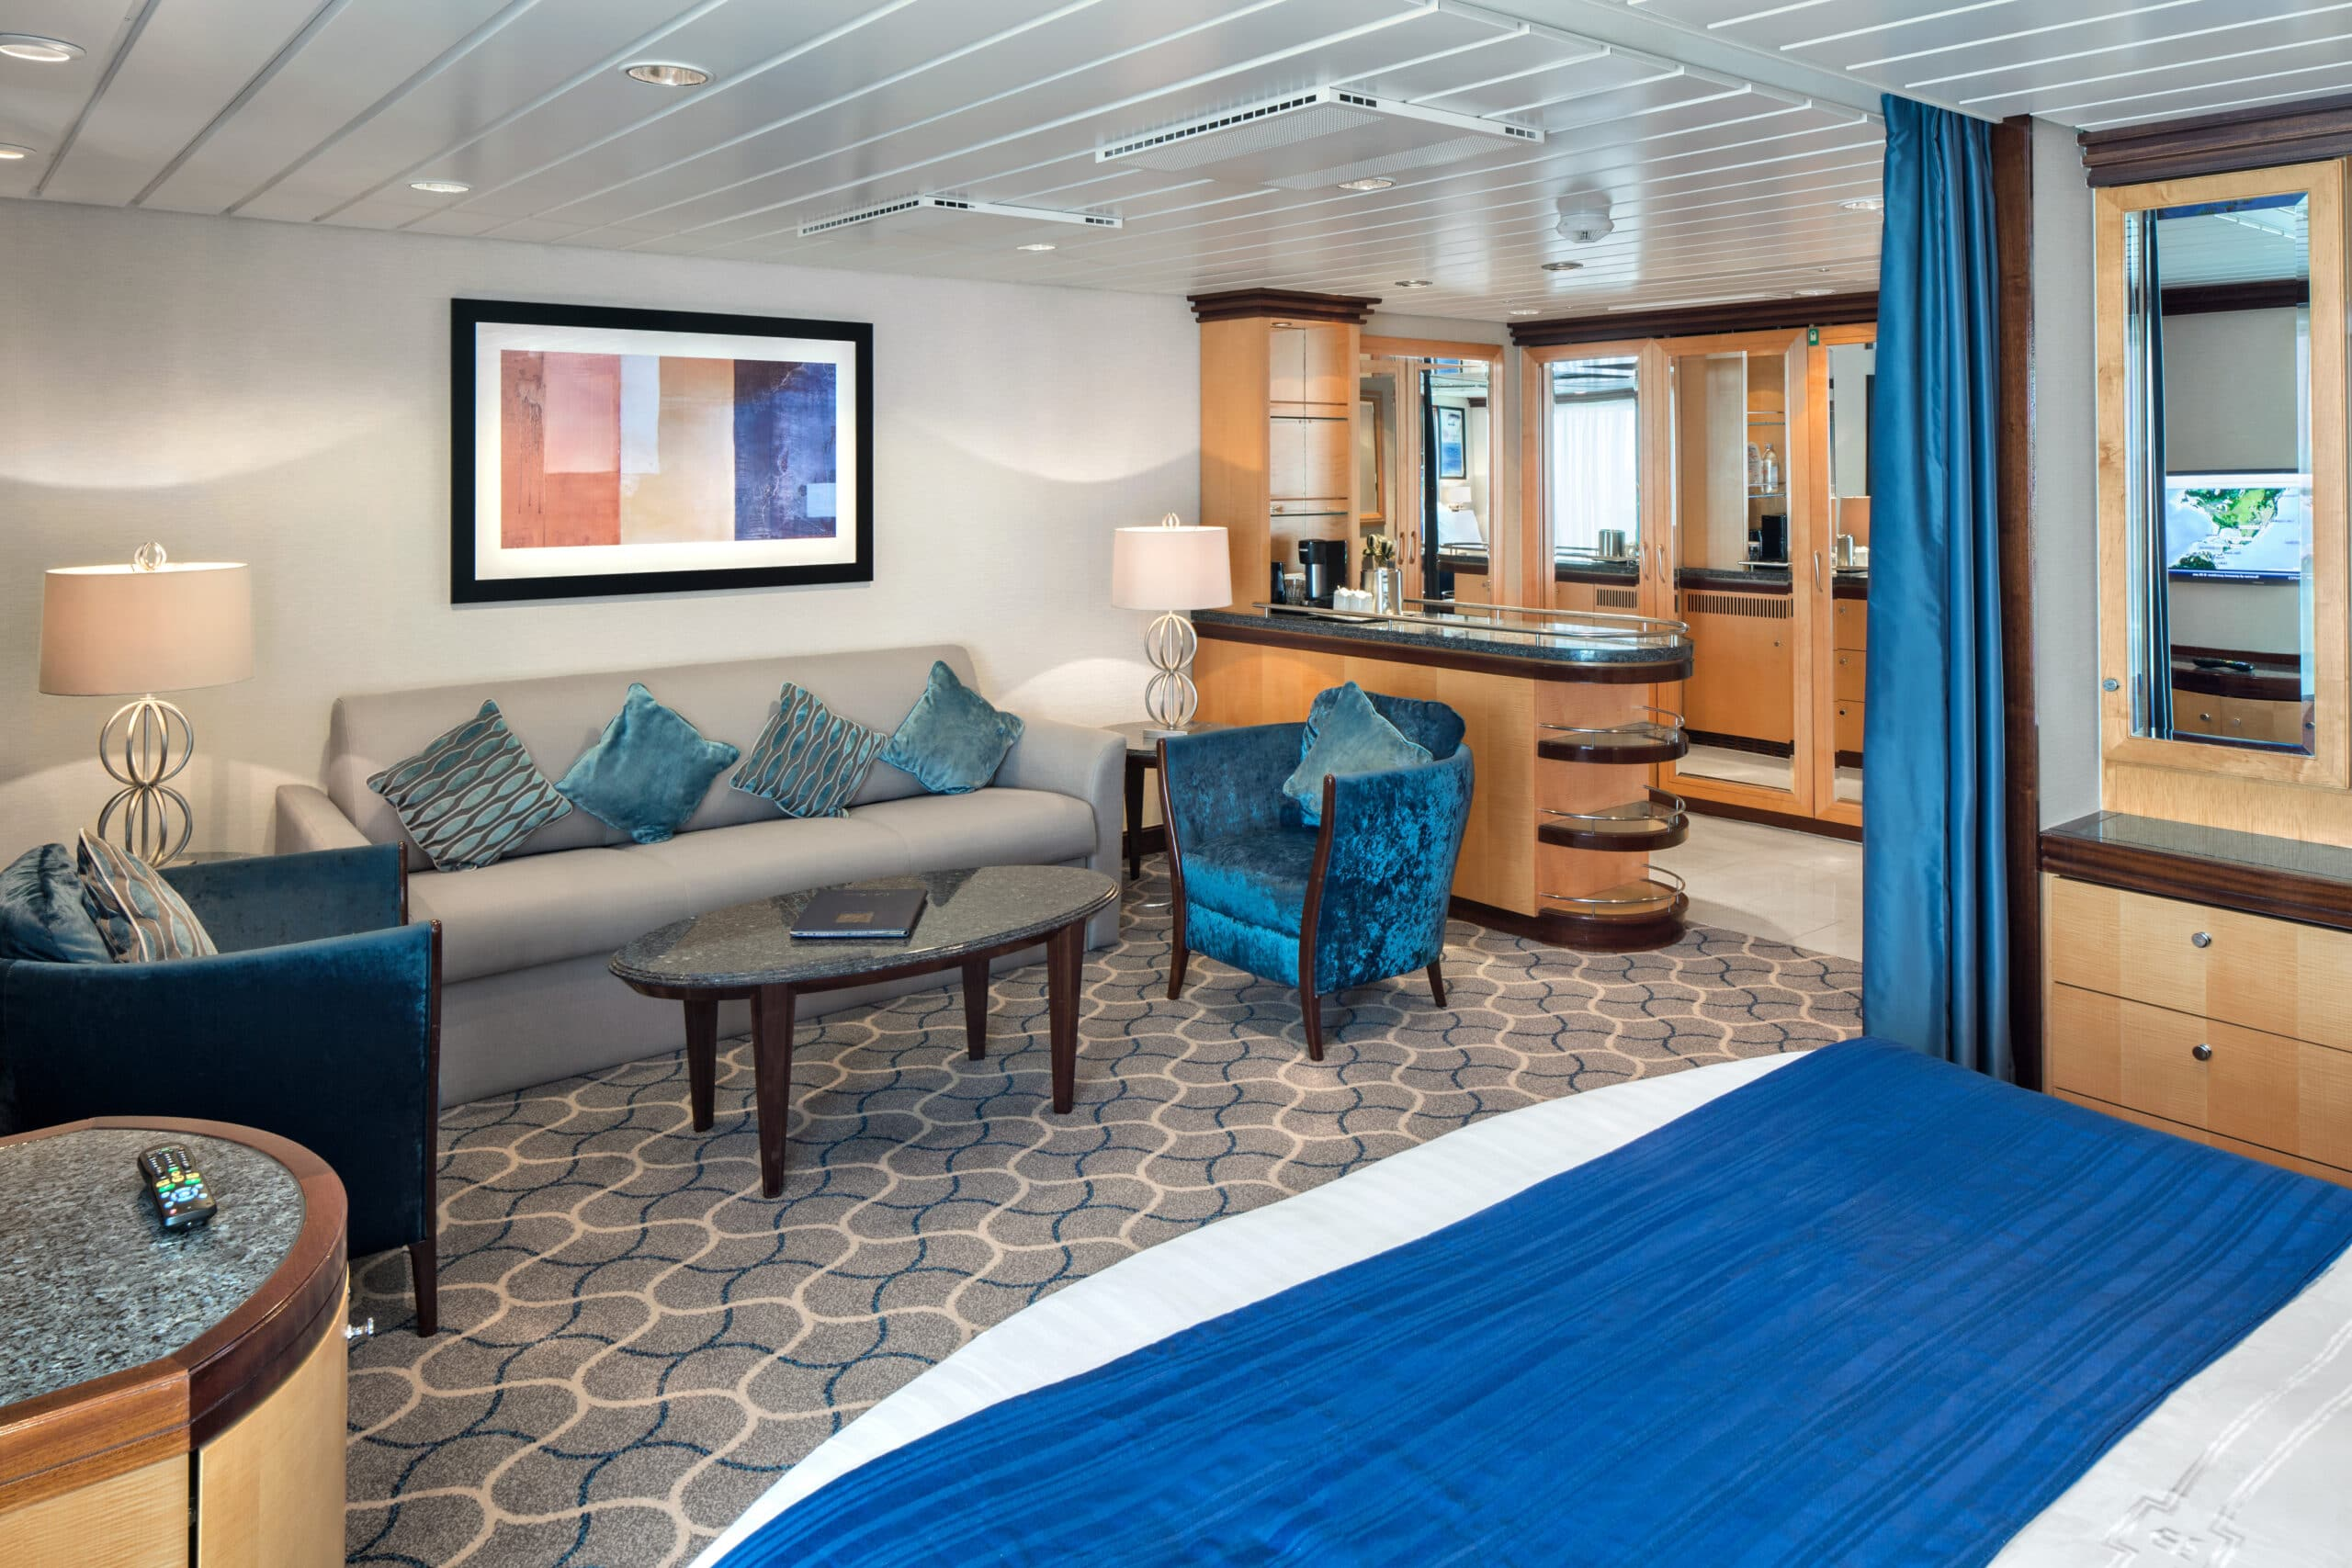 Royal-Caribbean-International-Freedom-Liberty-Independence-of-the-seas-schip-cruiseschip-categorie-GS-GT-Grand-Suite-two-bedroom